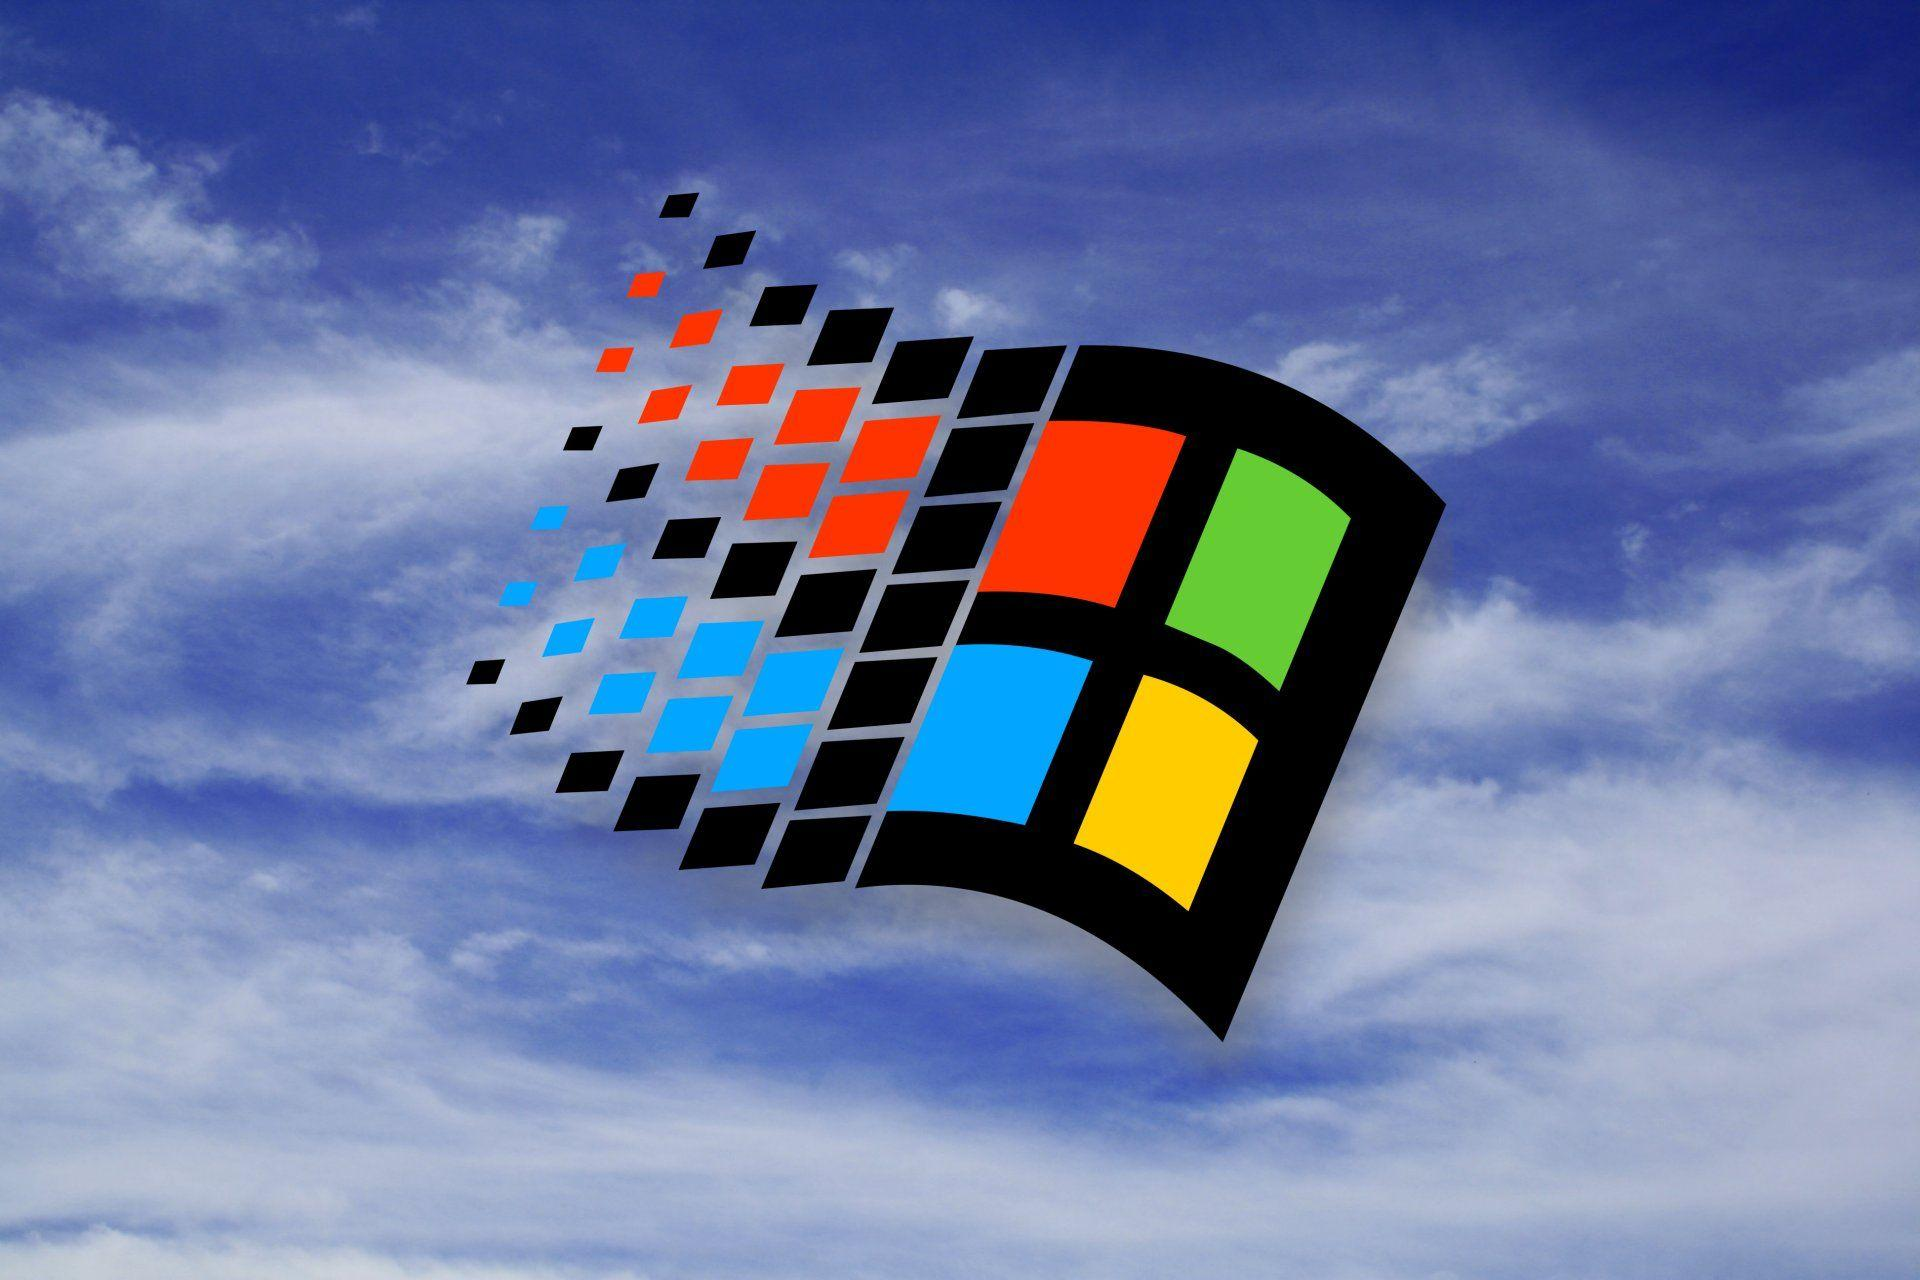 windows 98 wallpapers free download